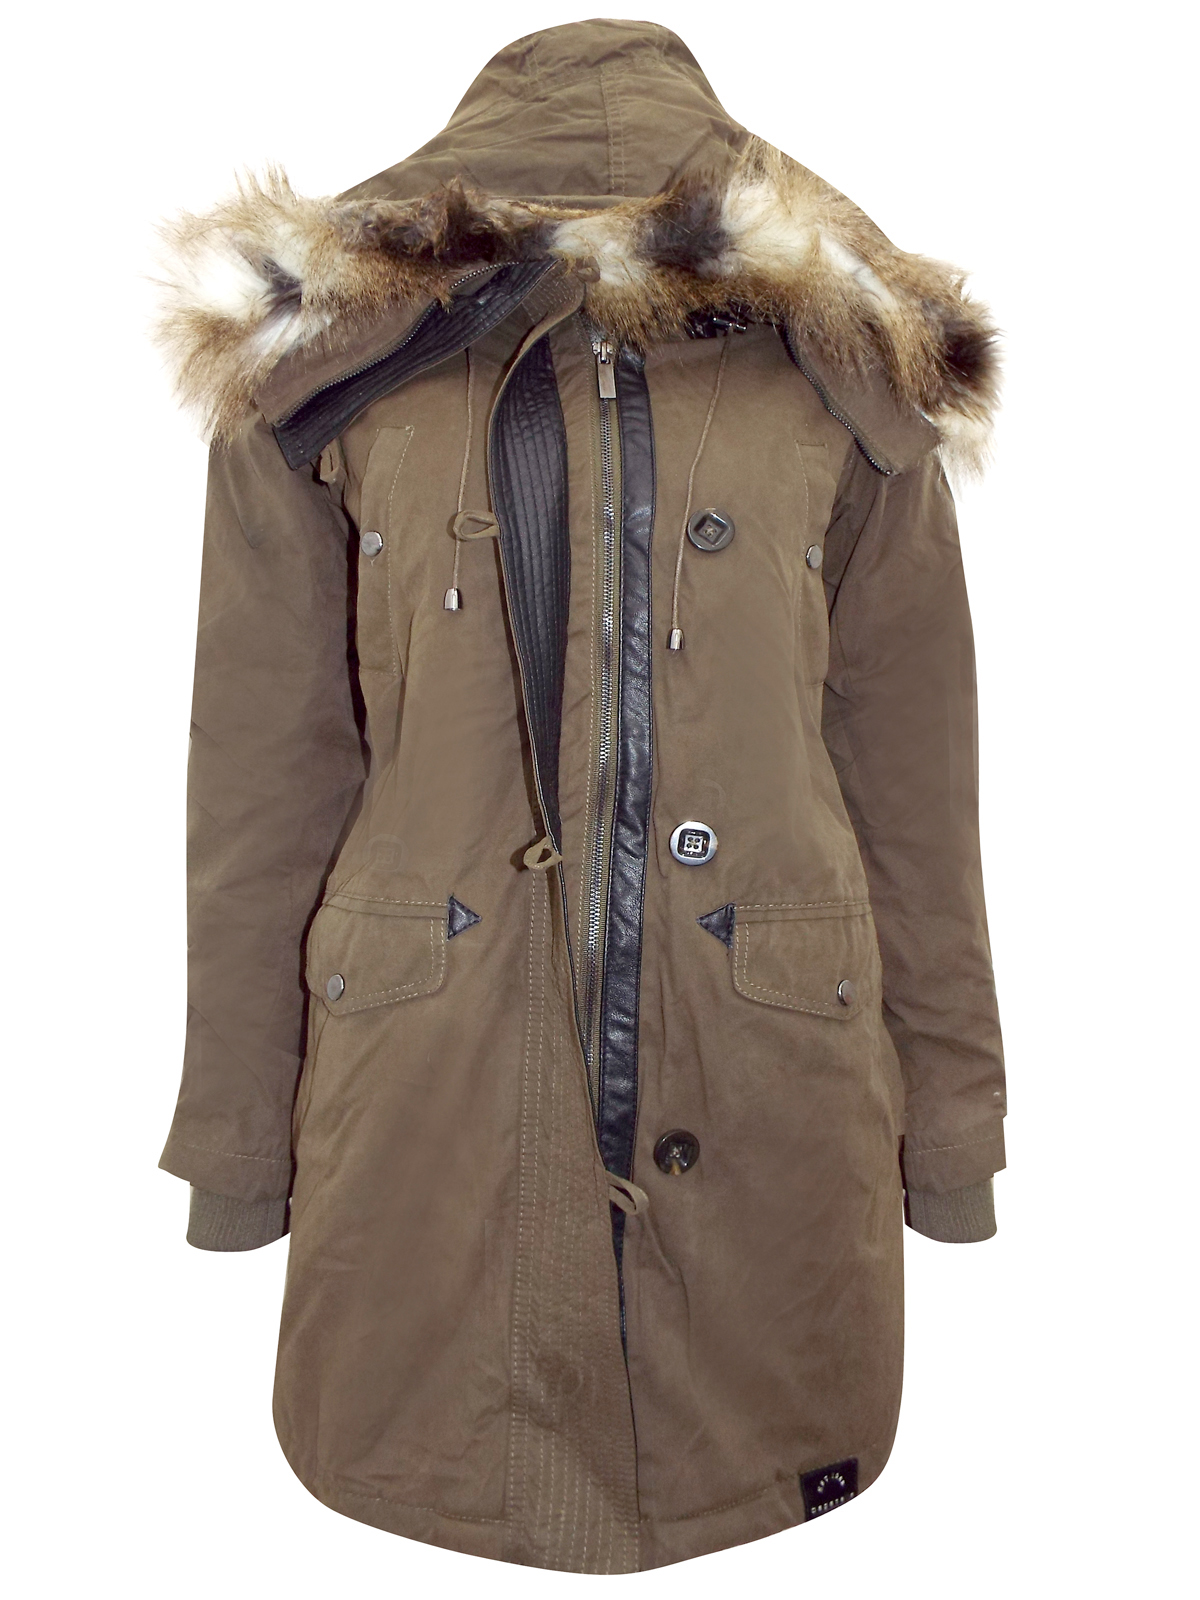 d5d6146a53 Bagatelle Heritage - - Bagatelle Heritage DARK-GREEN Hooded Faux Fur  Convertible Coat - Size Small to X